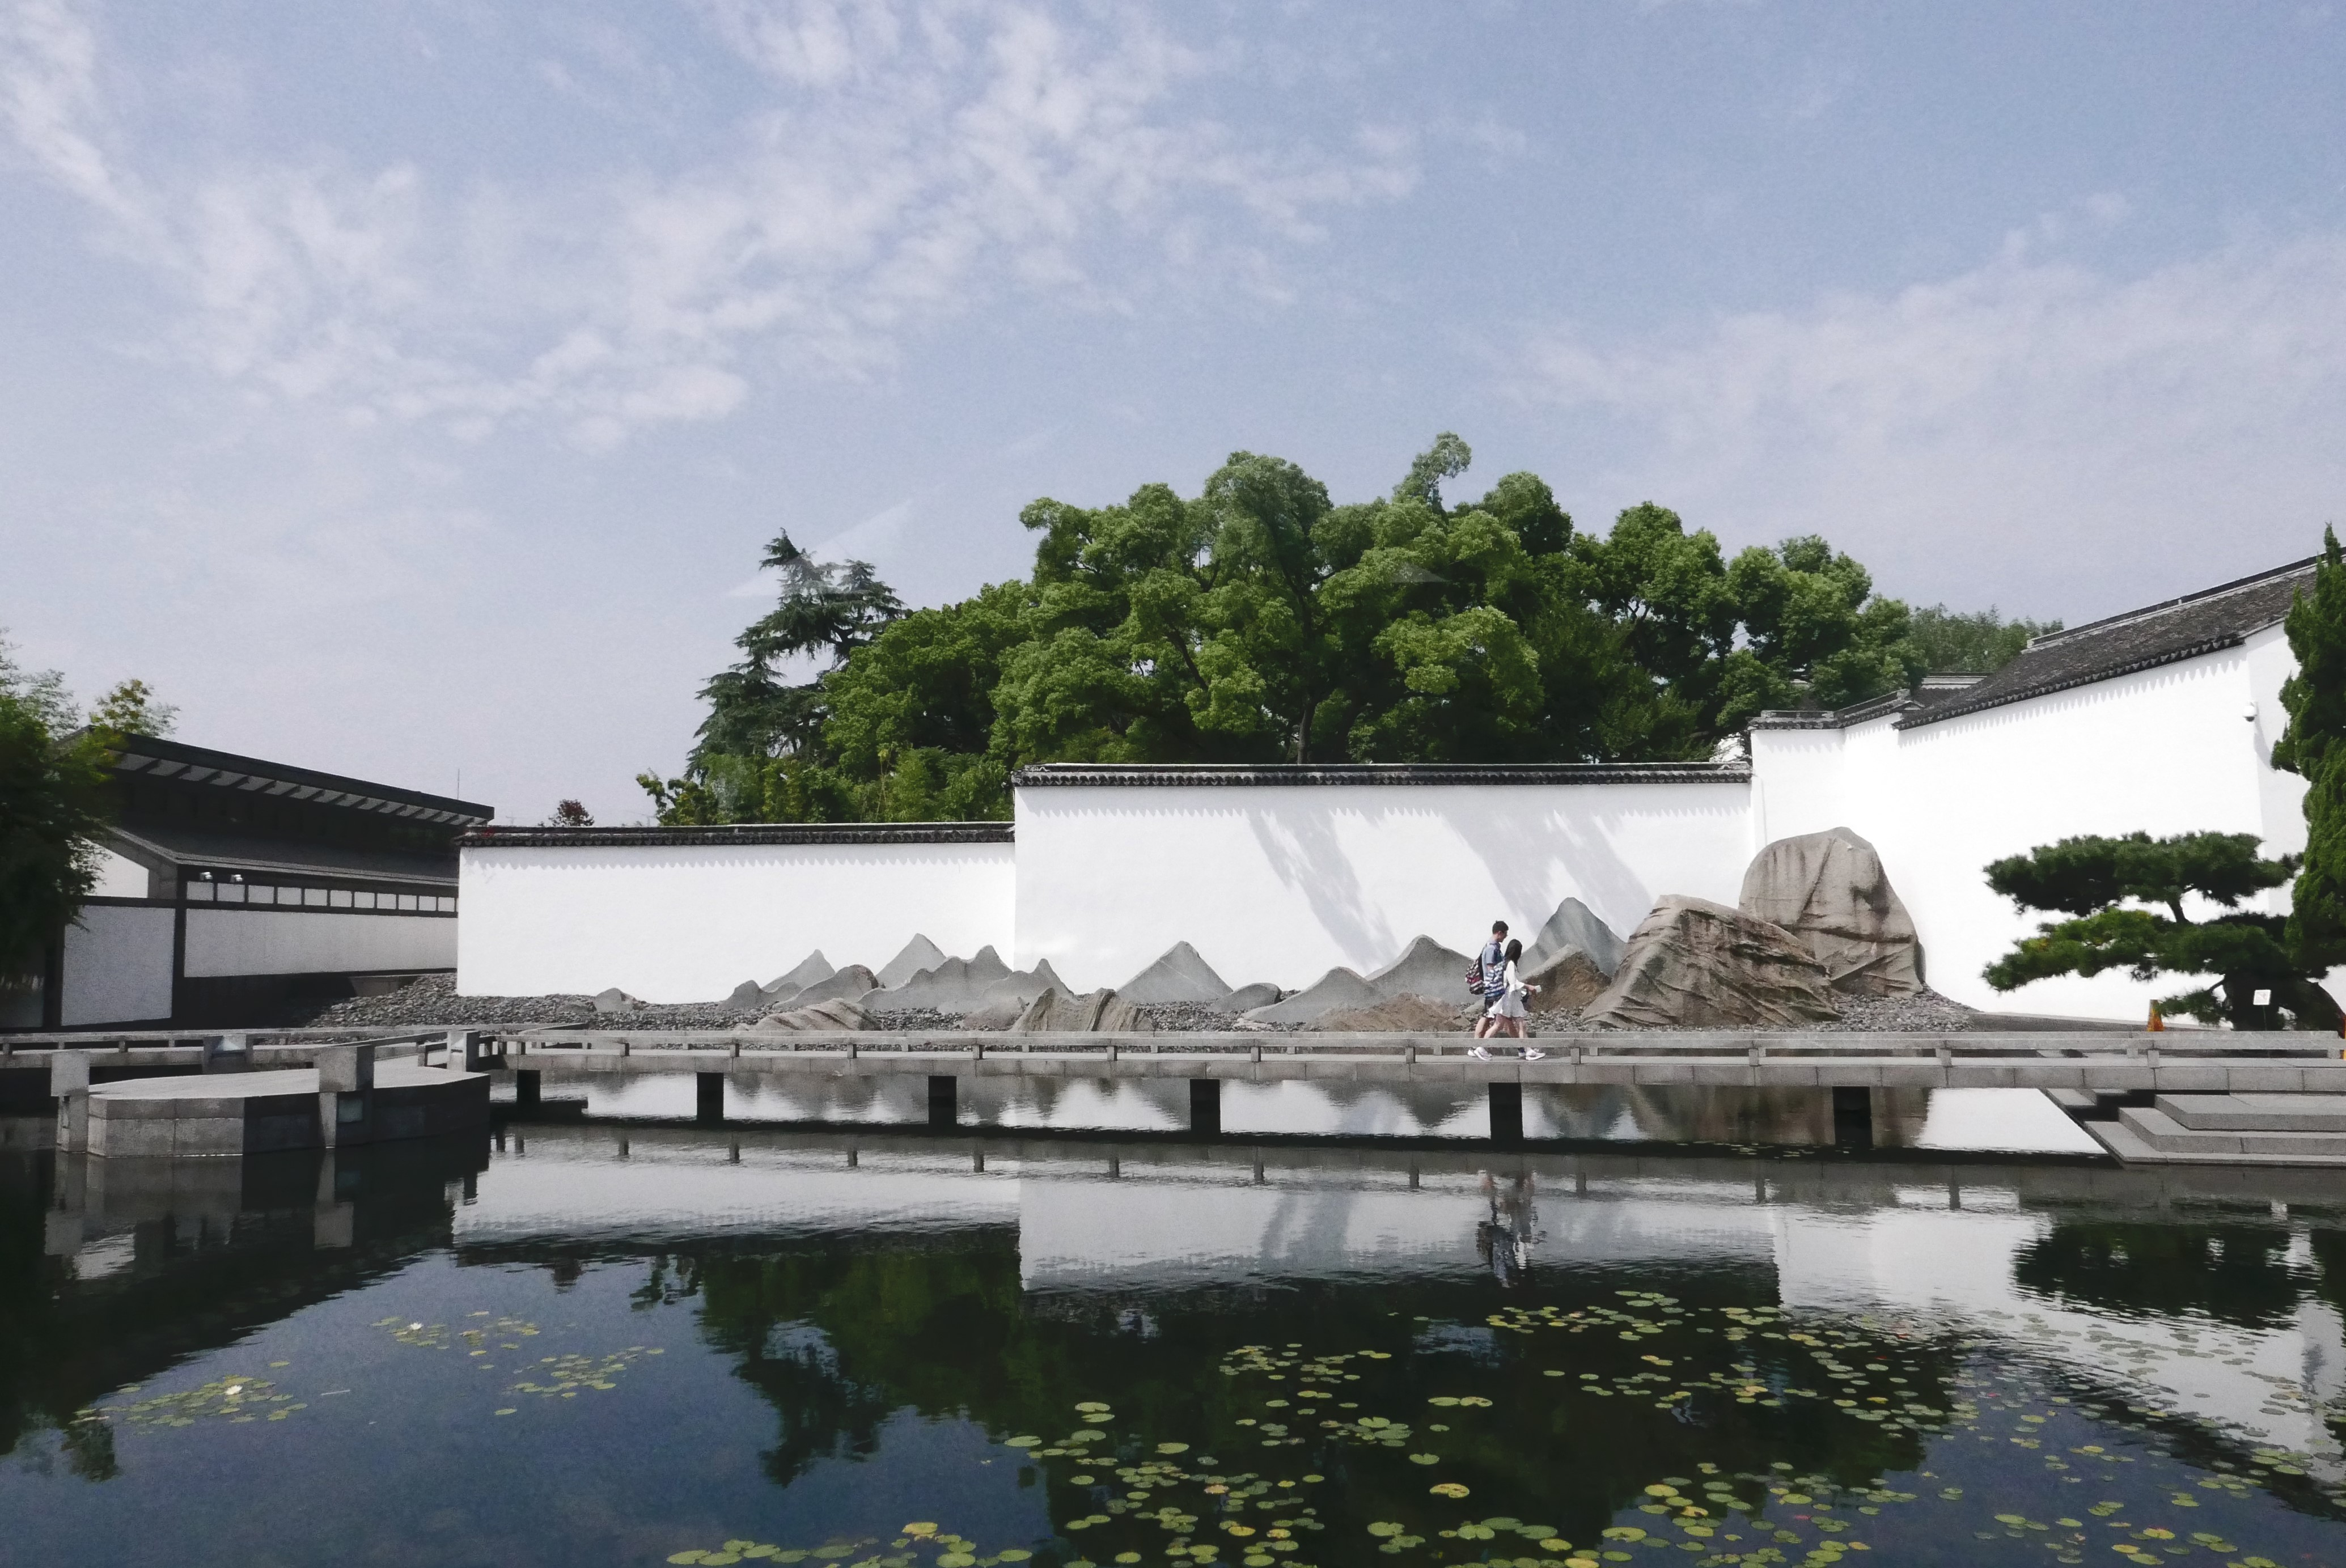 Suzhou Museum, architecture of renowned I.M Pei, photo taken by Charles Britton